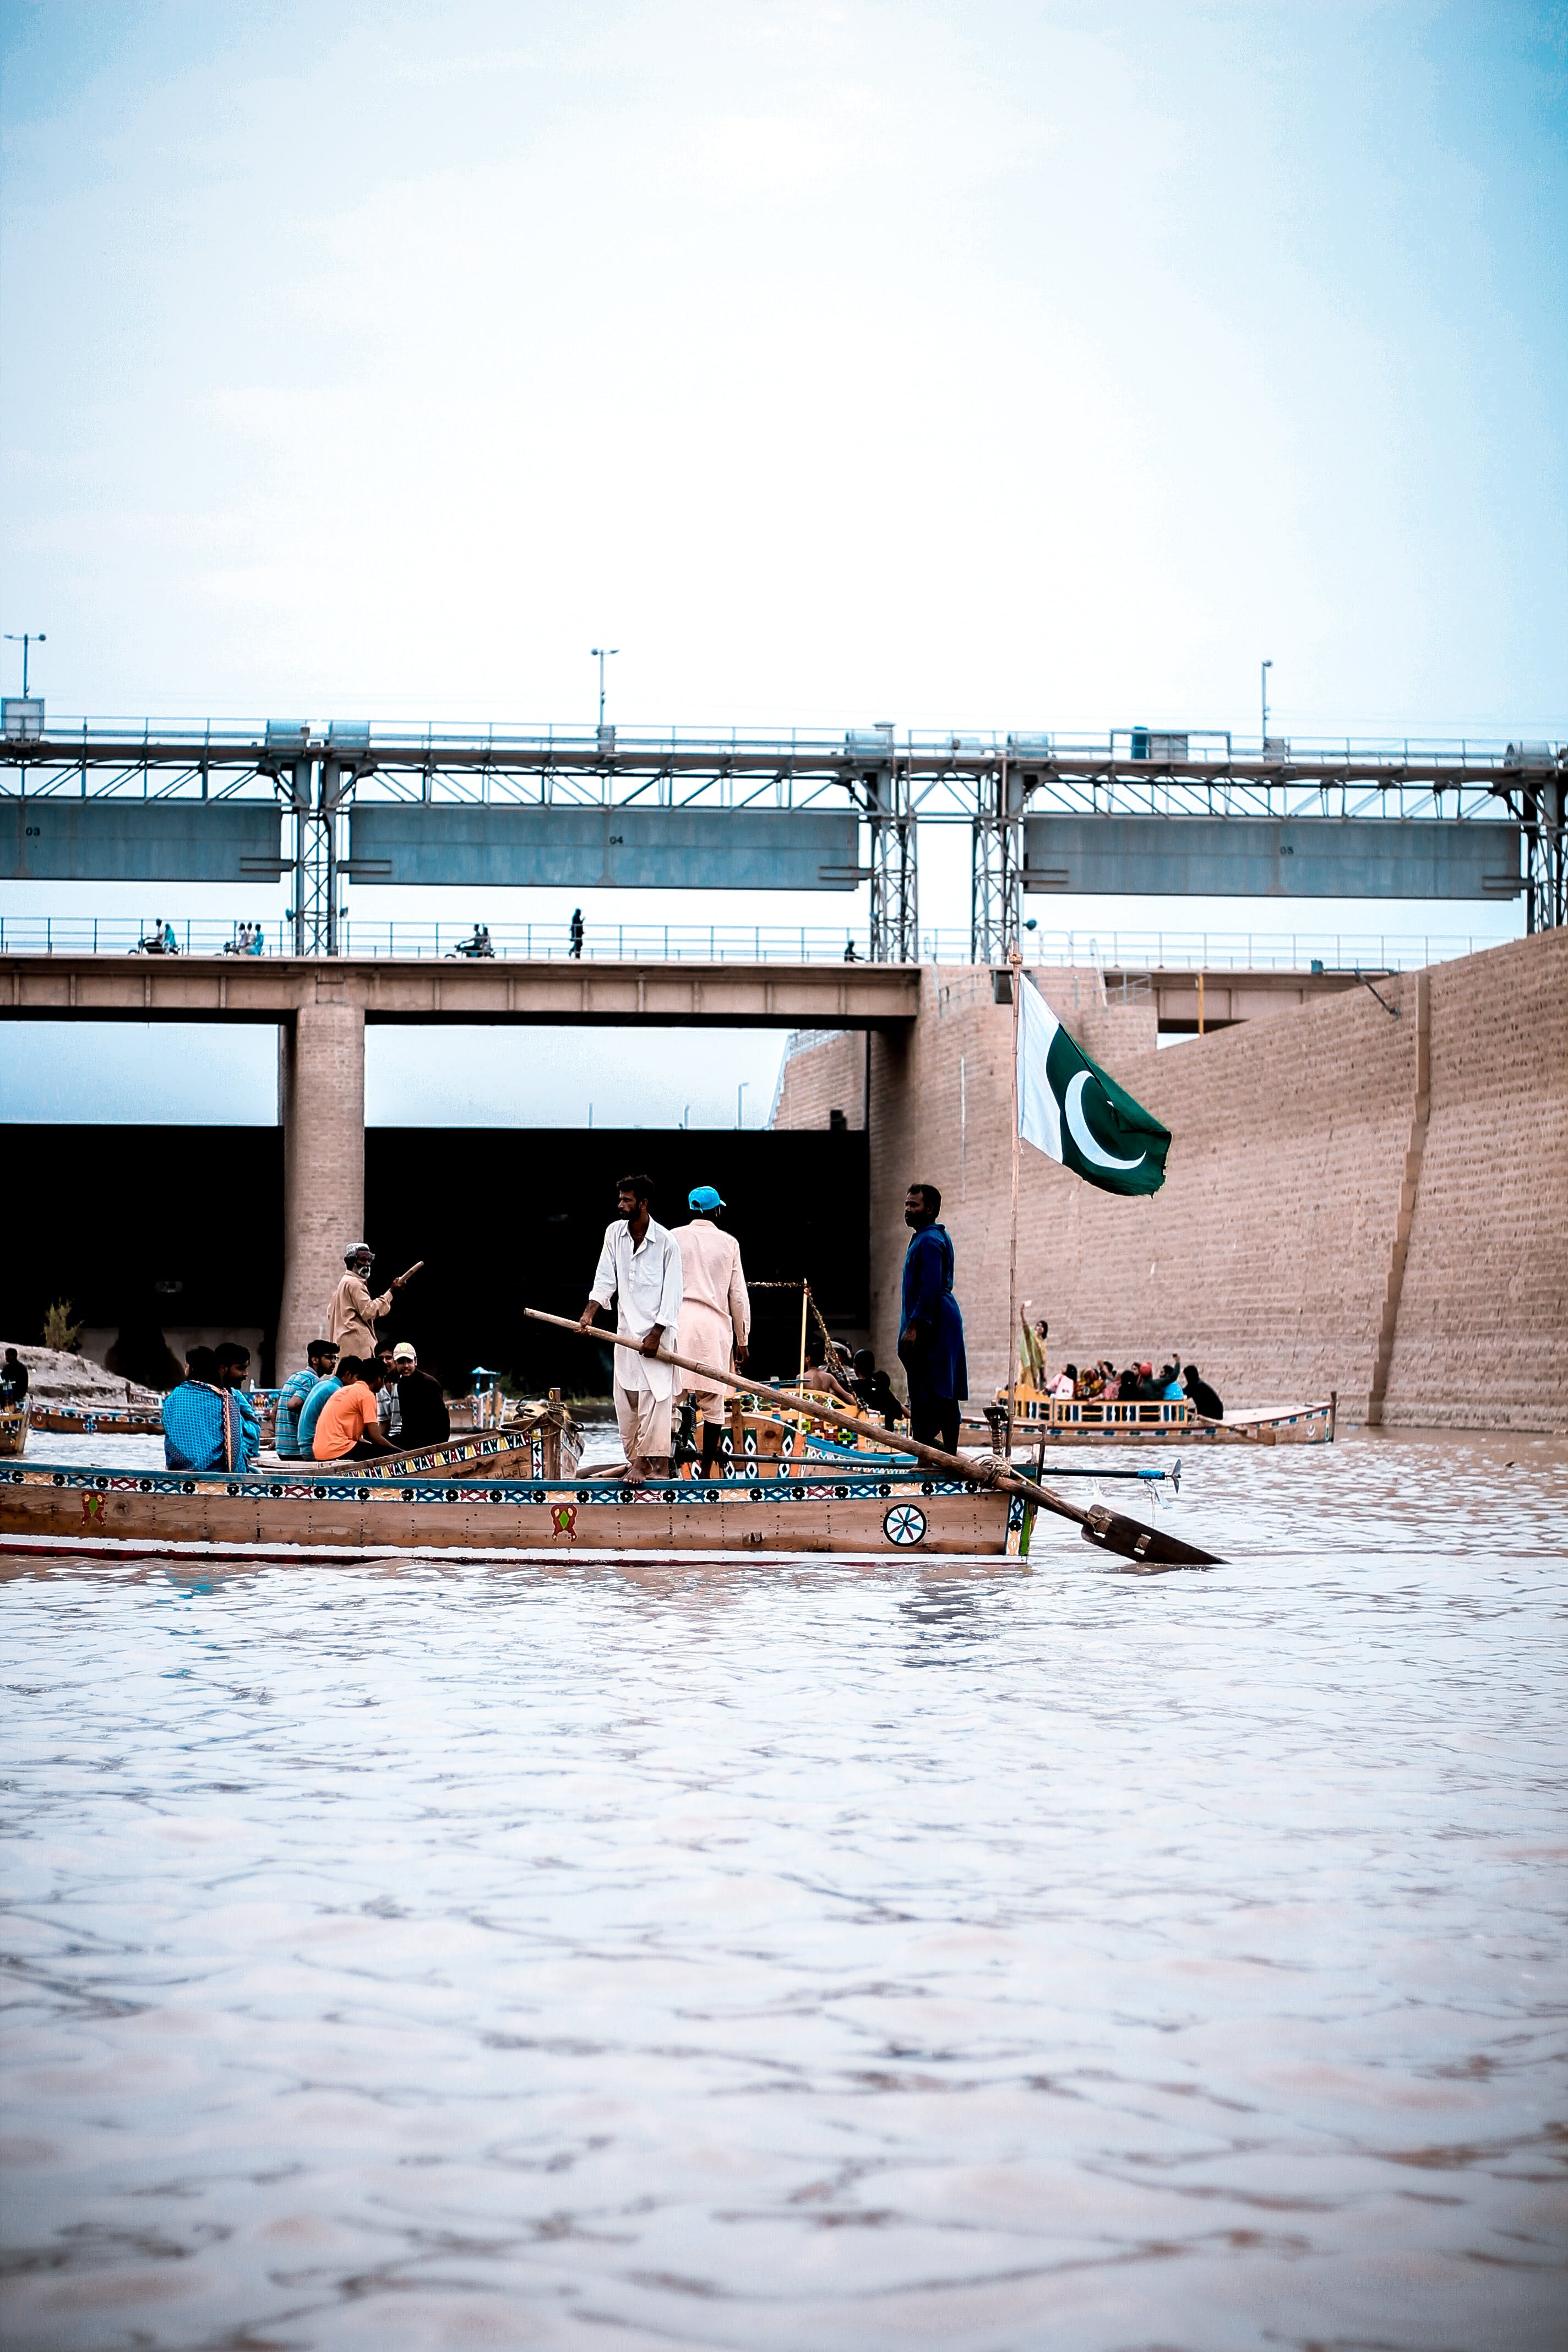 People Riding On Boat With Pakistan Flag